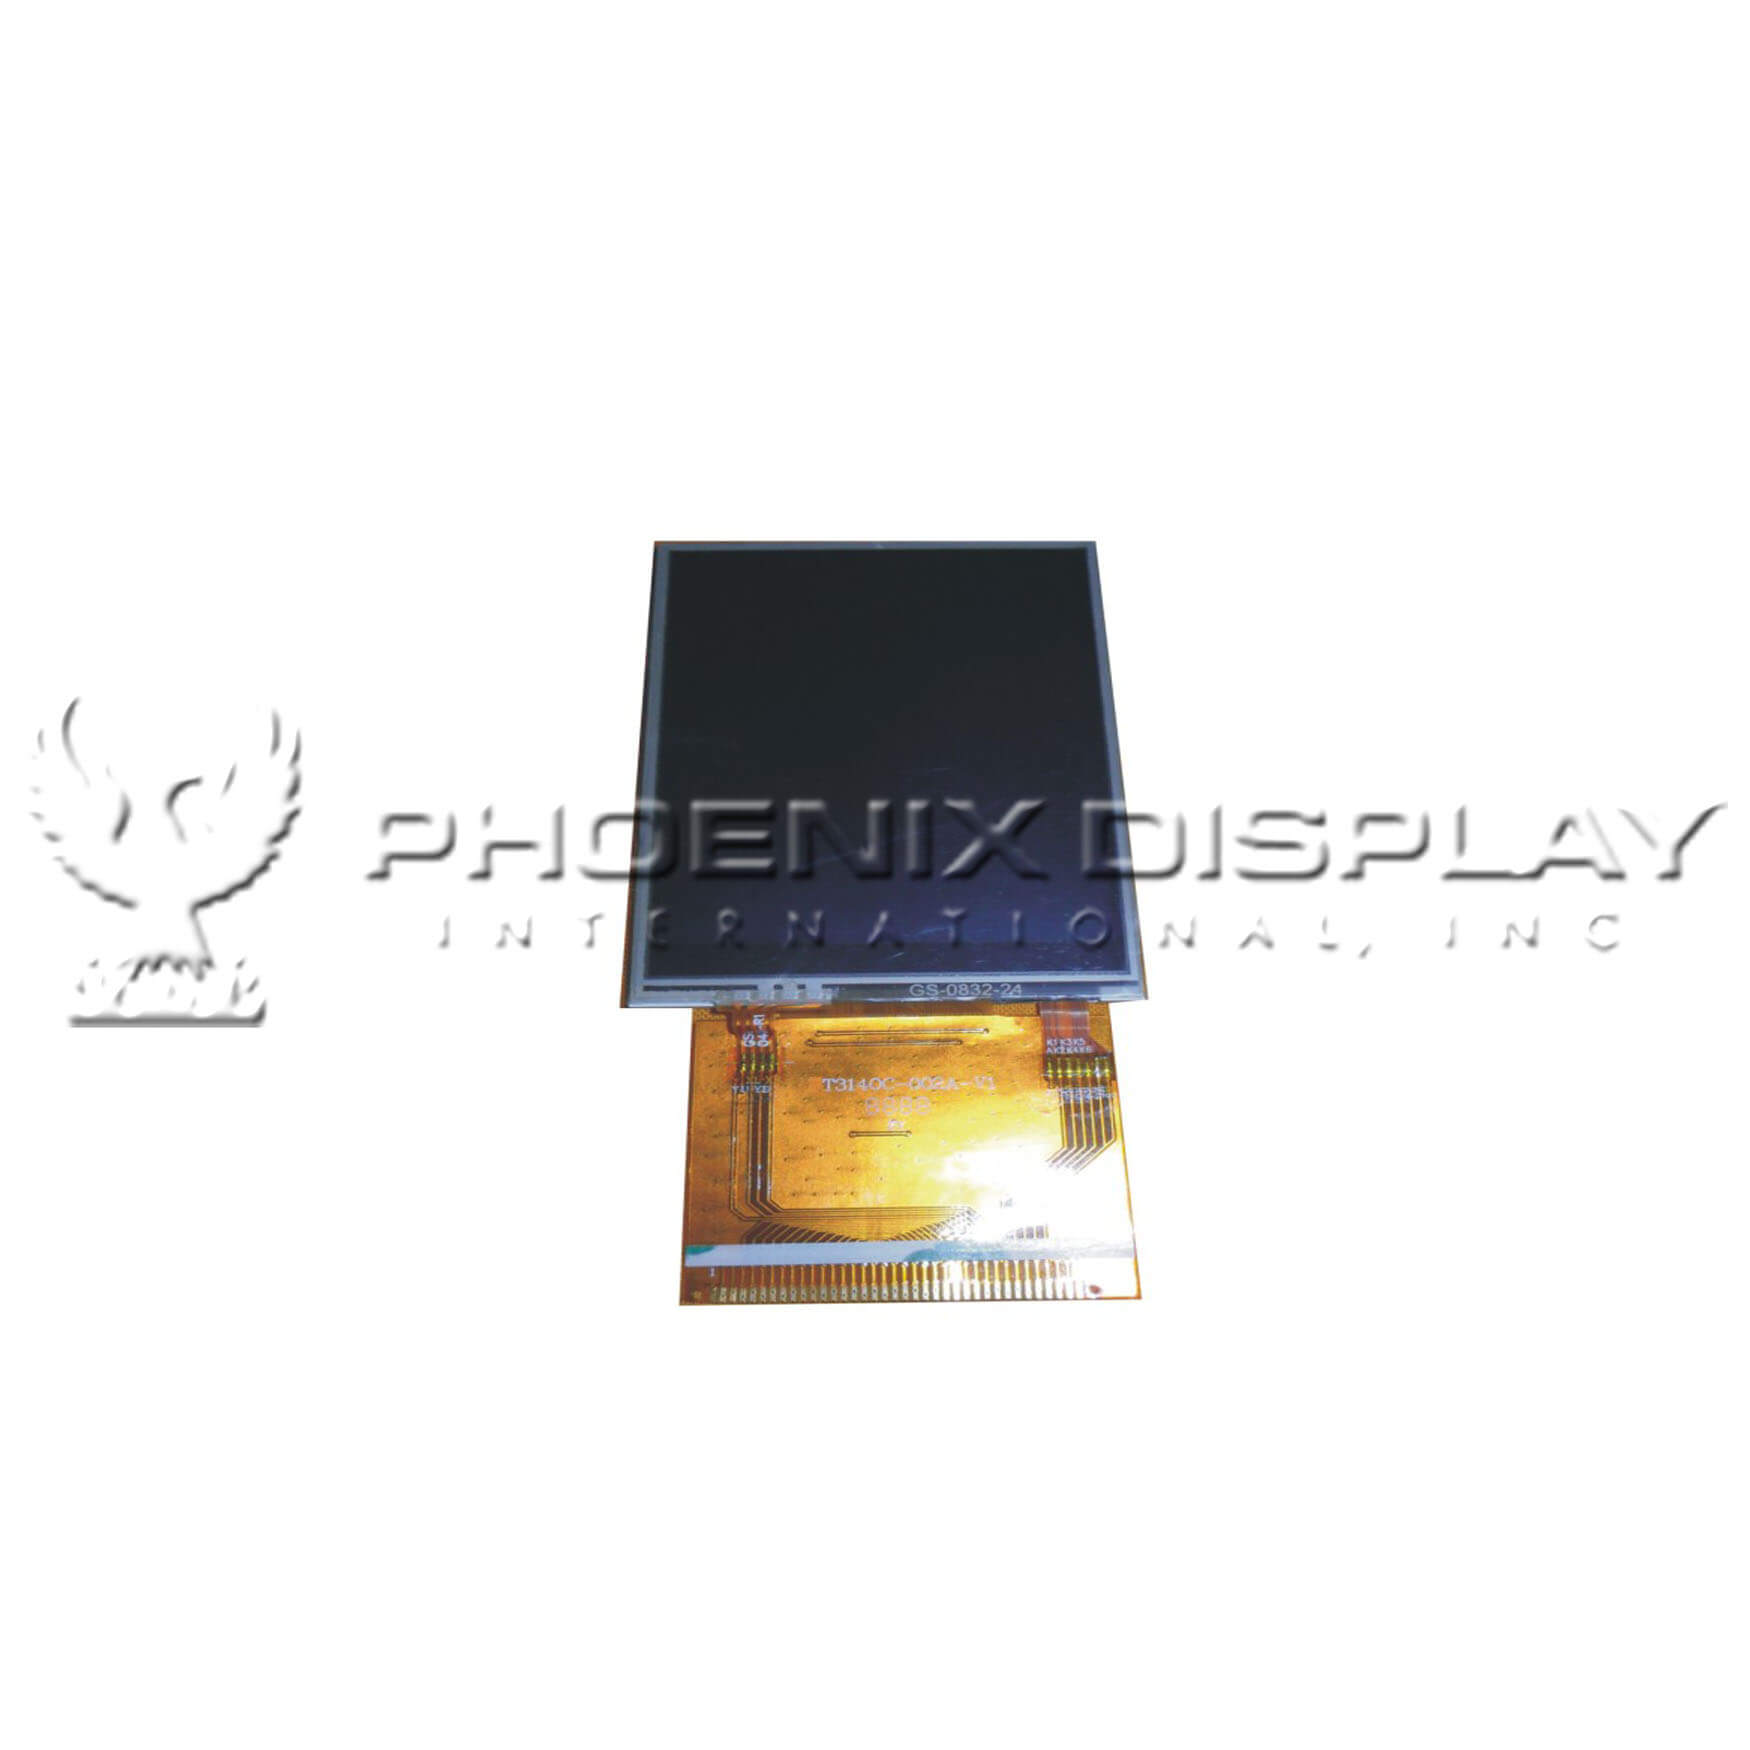 3.2 240 x 400 Transmissive Color TFT Display | PDI314C-02A | Phoenix Display International